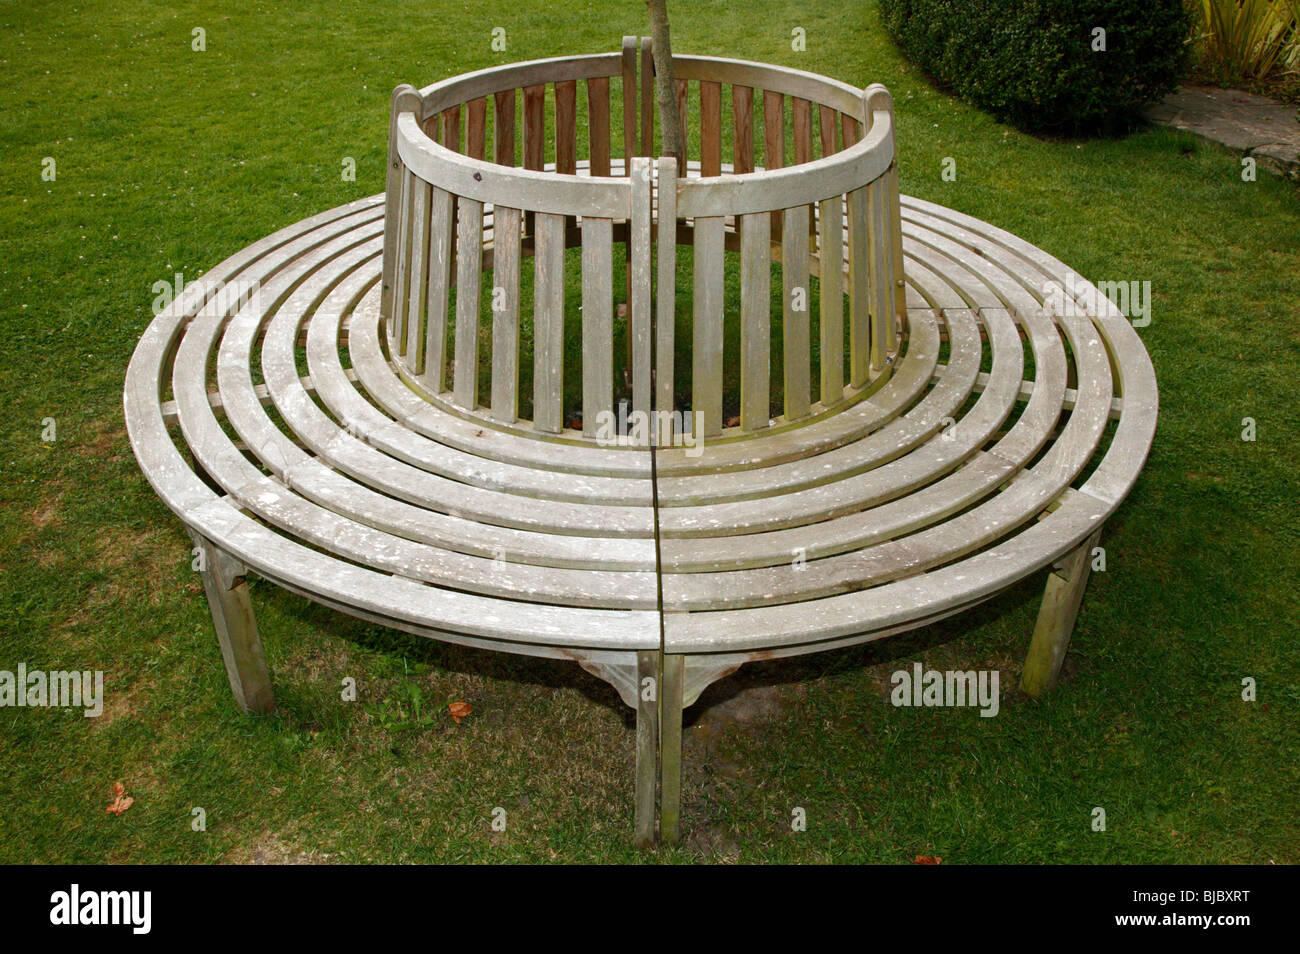 Terrific Circular Wooden Bench Seat In The Garden Of The Salutation Cjindustries Chair Design For Home Cjindustriesco